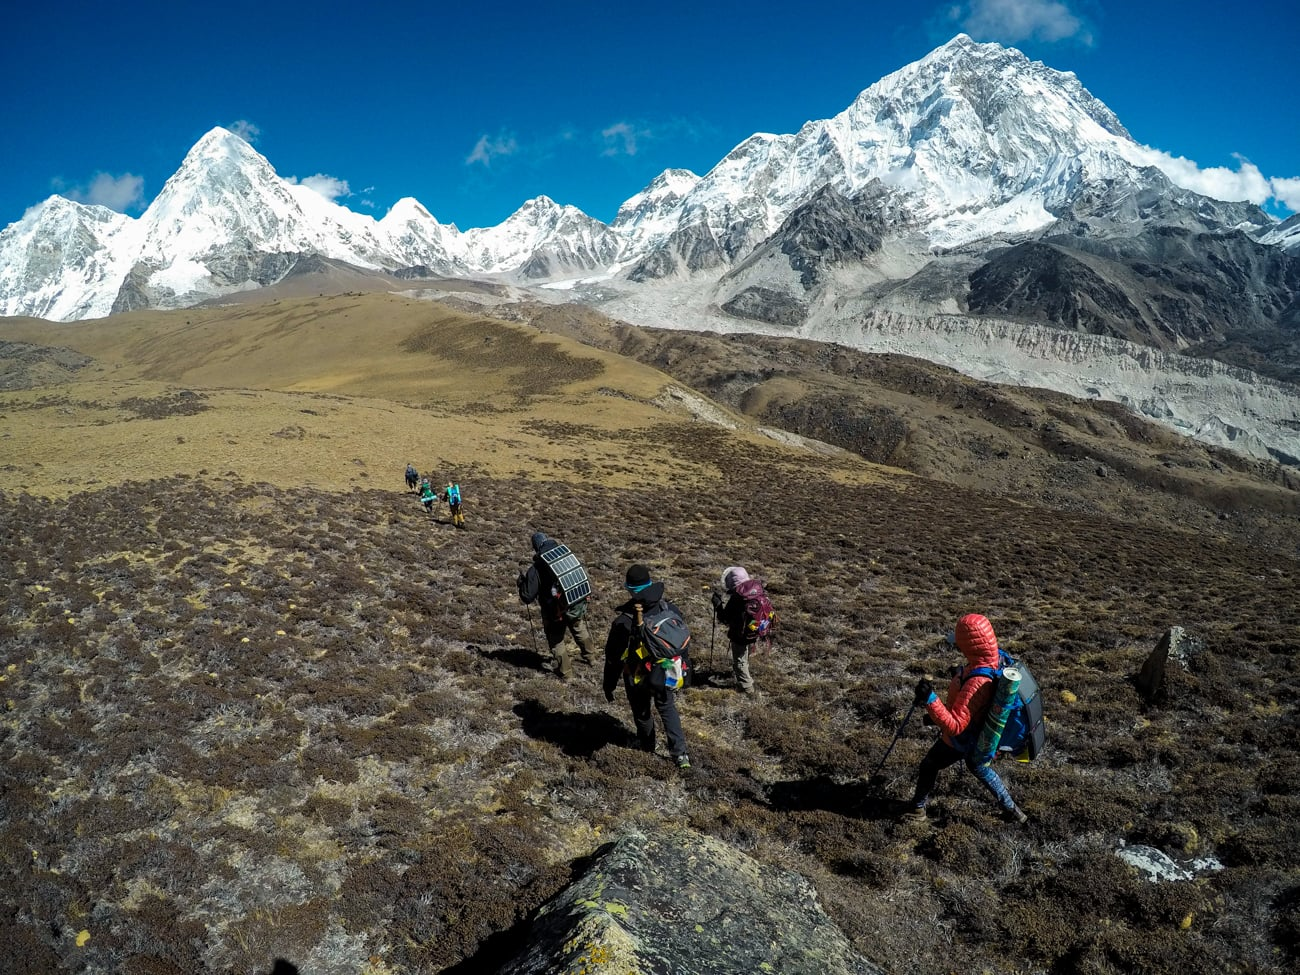 Learn exactly what gear & clothes you need for your Everest Basecamp trek with my detailed Everest Basecamp female packing list.